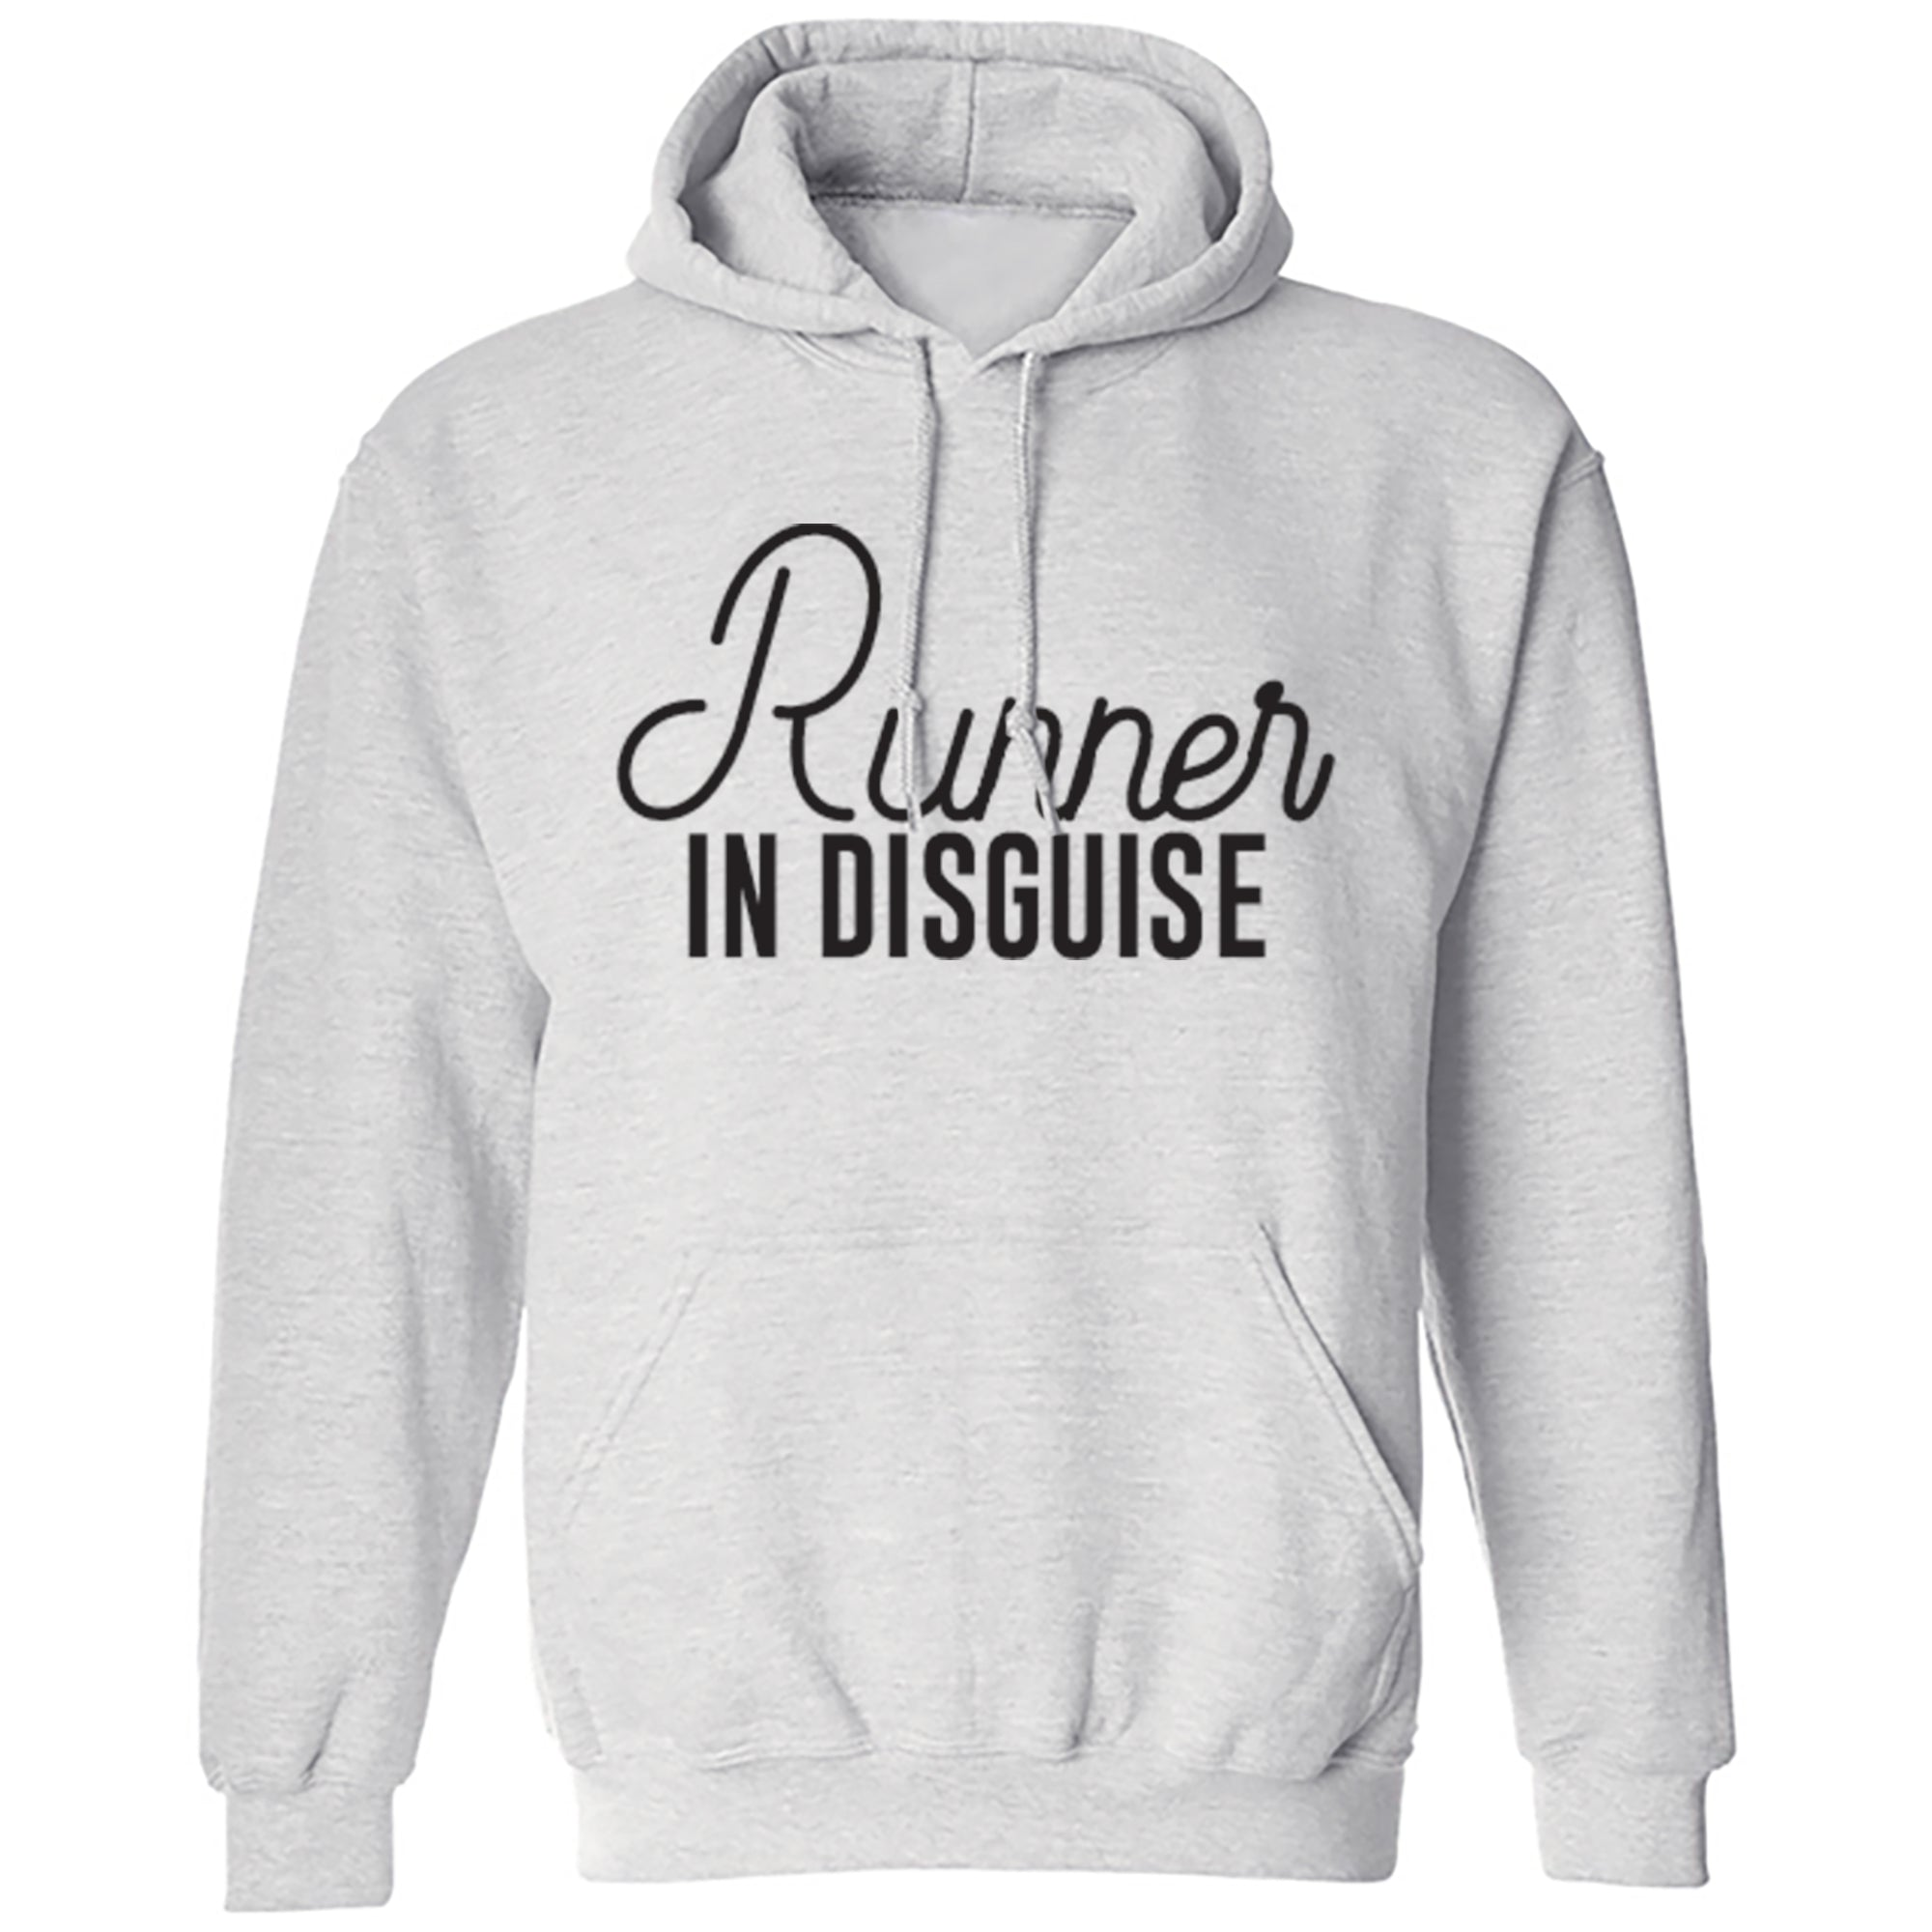 Runner In Disguise Unisex Hoodie S0049 - Illustrated Identity Ltd.